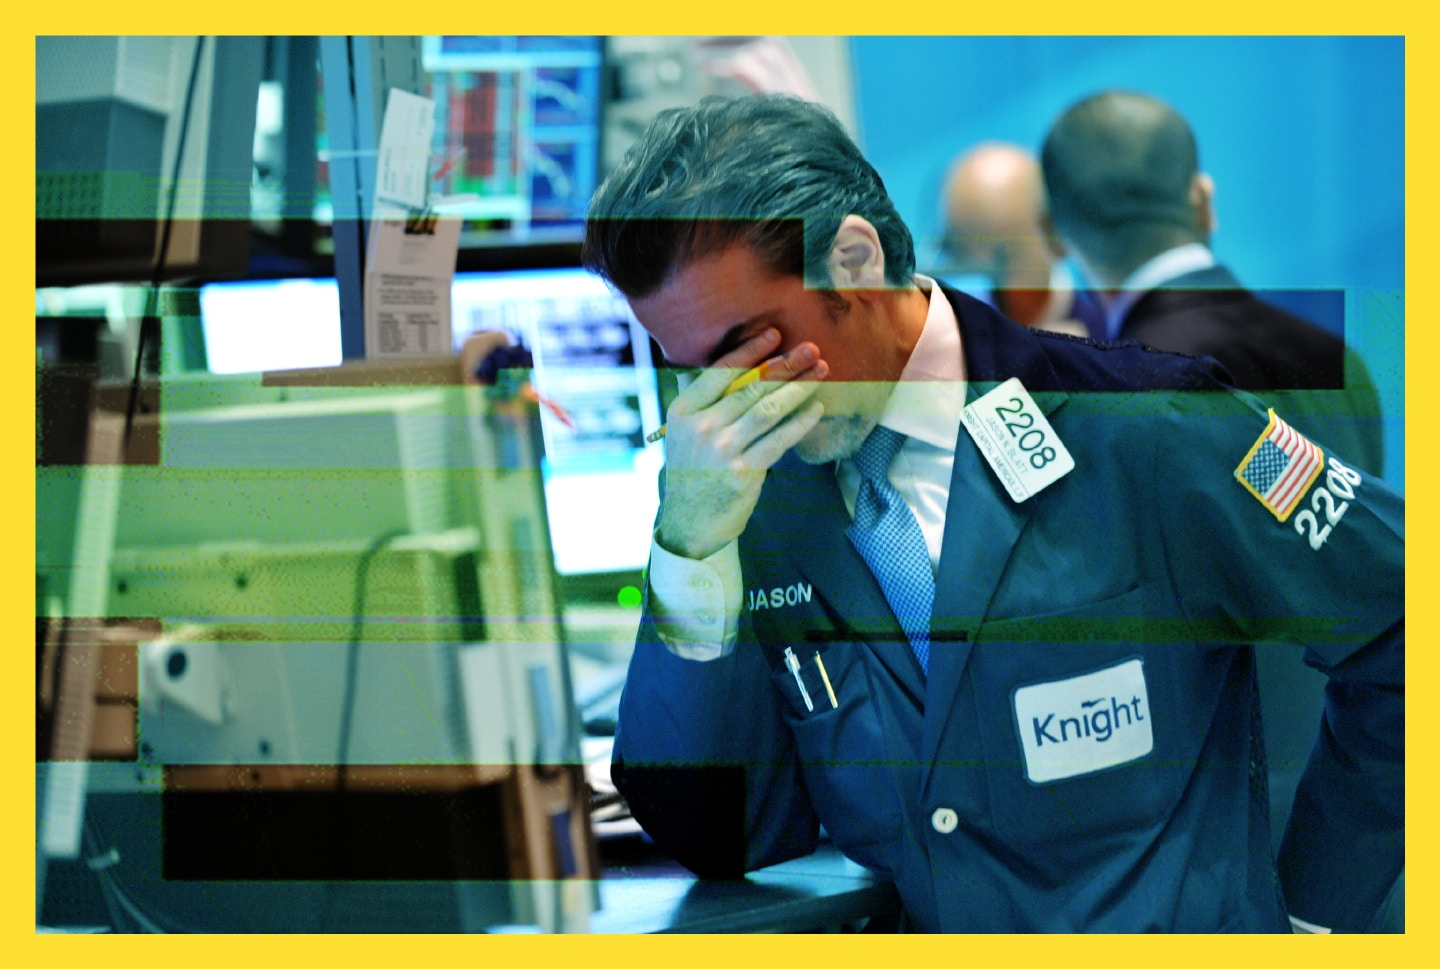 The penny stock chronicles jason blatt of knight capital americas reacts to down market on the floor of the new york stock exchange aug 8 2011 buycottarizona Images